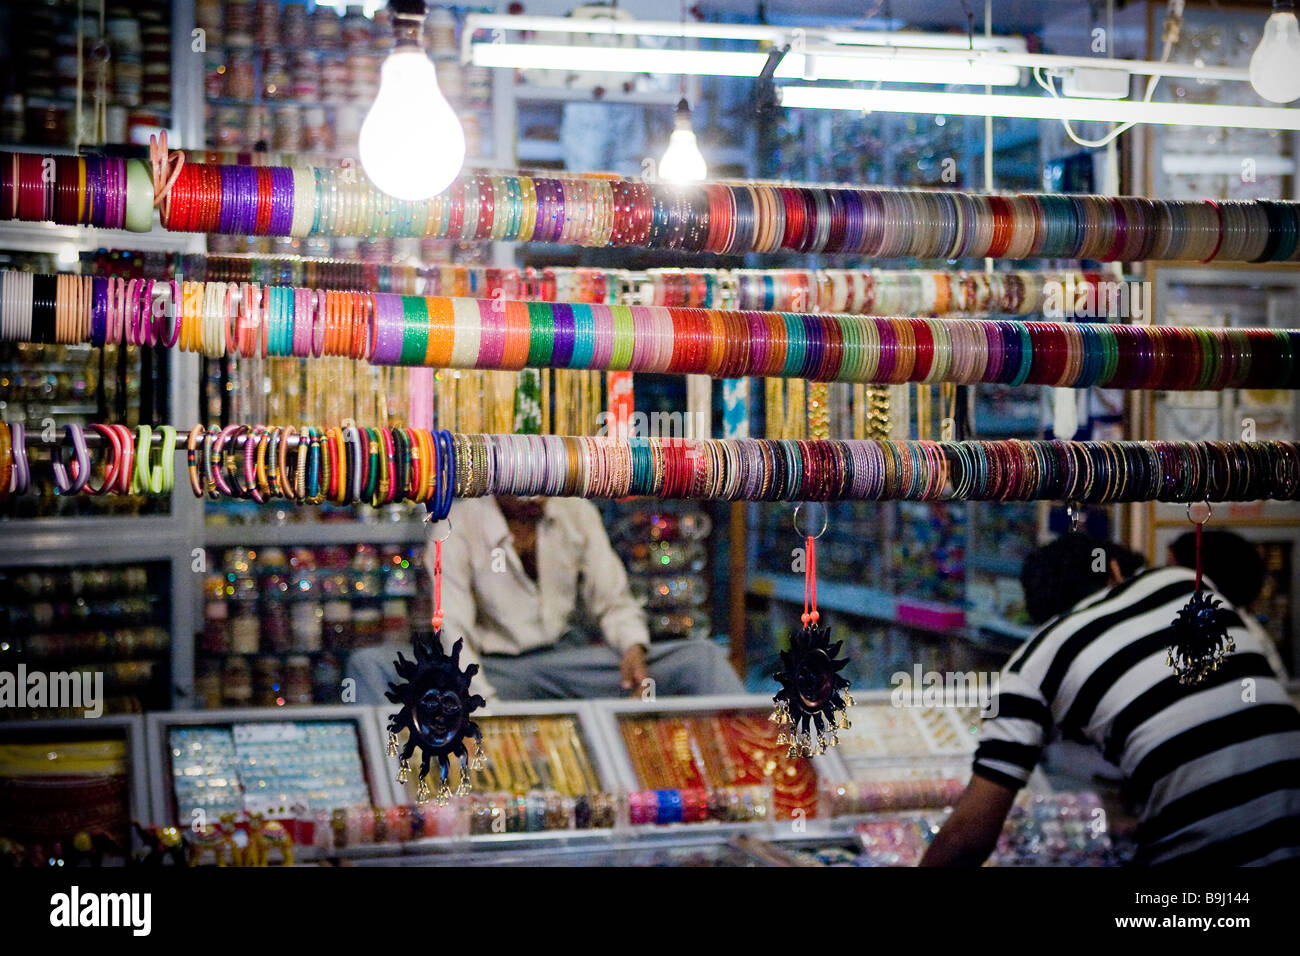 photos bangle view delhi store bangles bzdet pictures dealers of front naveen shop kamla ncr nagar